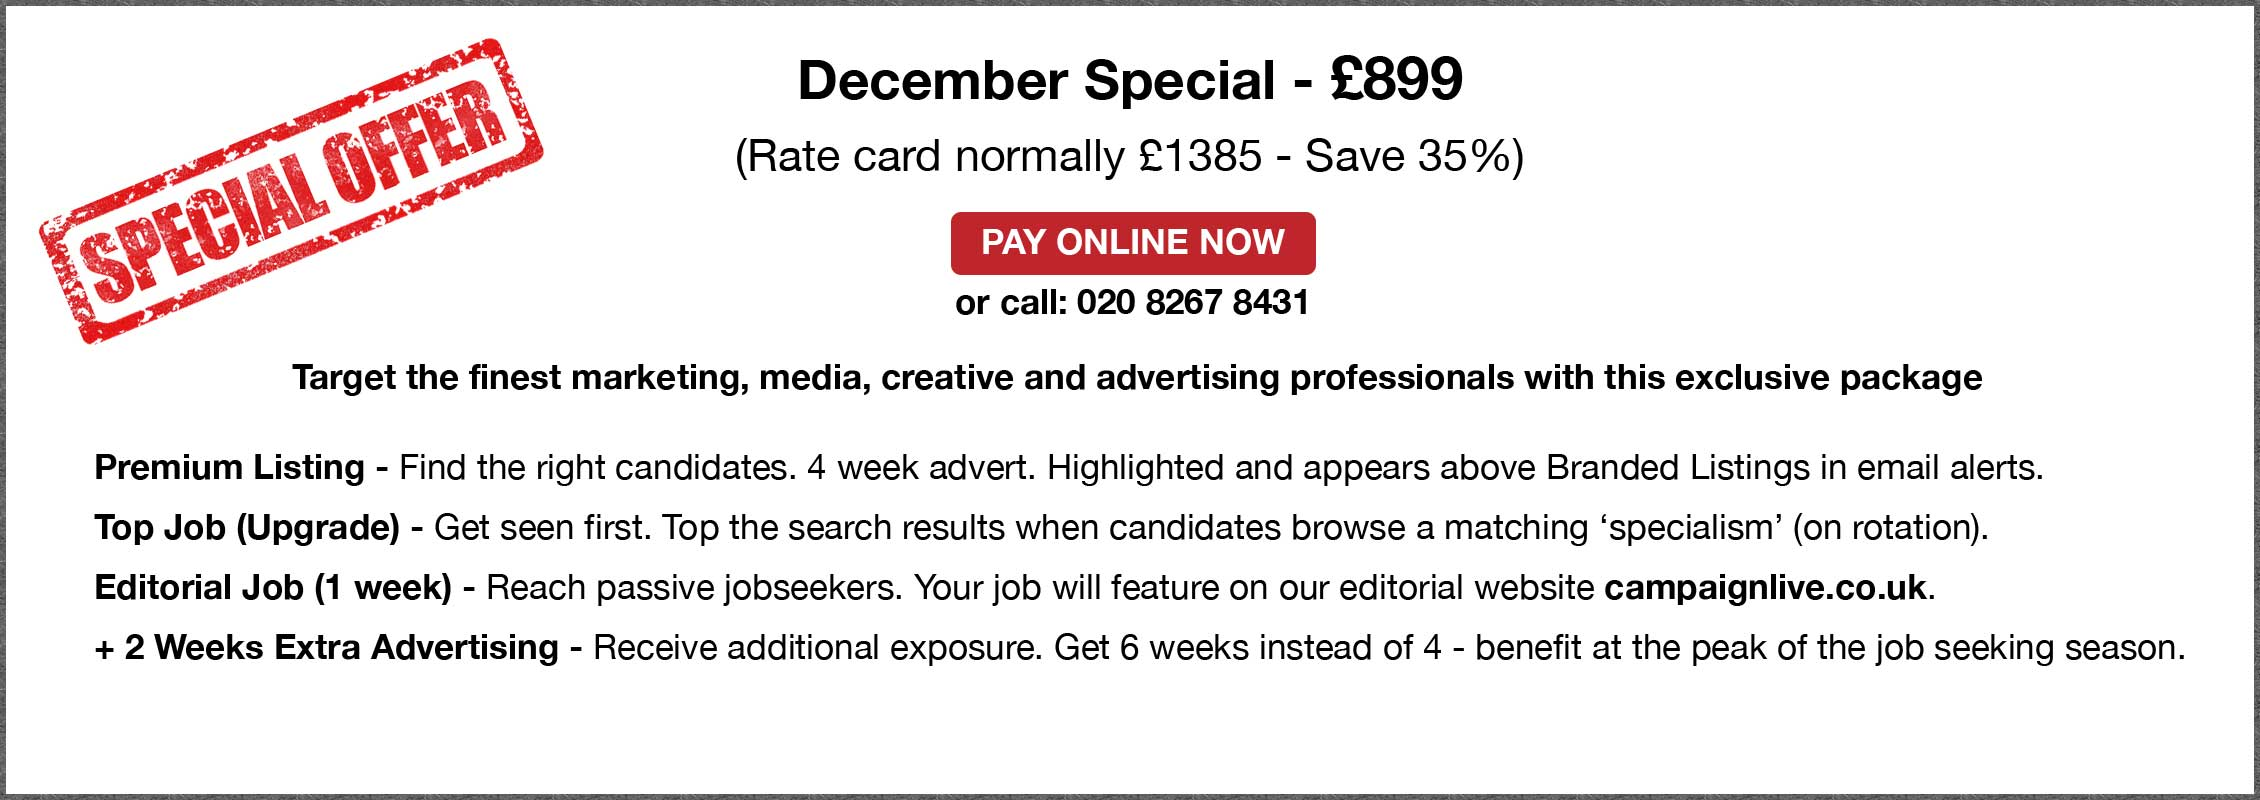 Special Offer. December Special - £899.